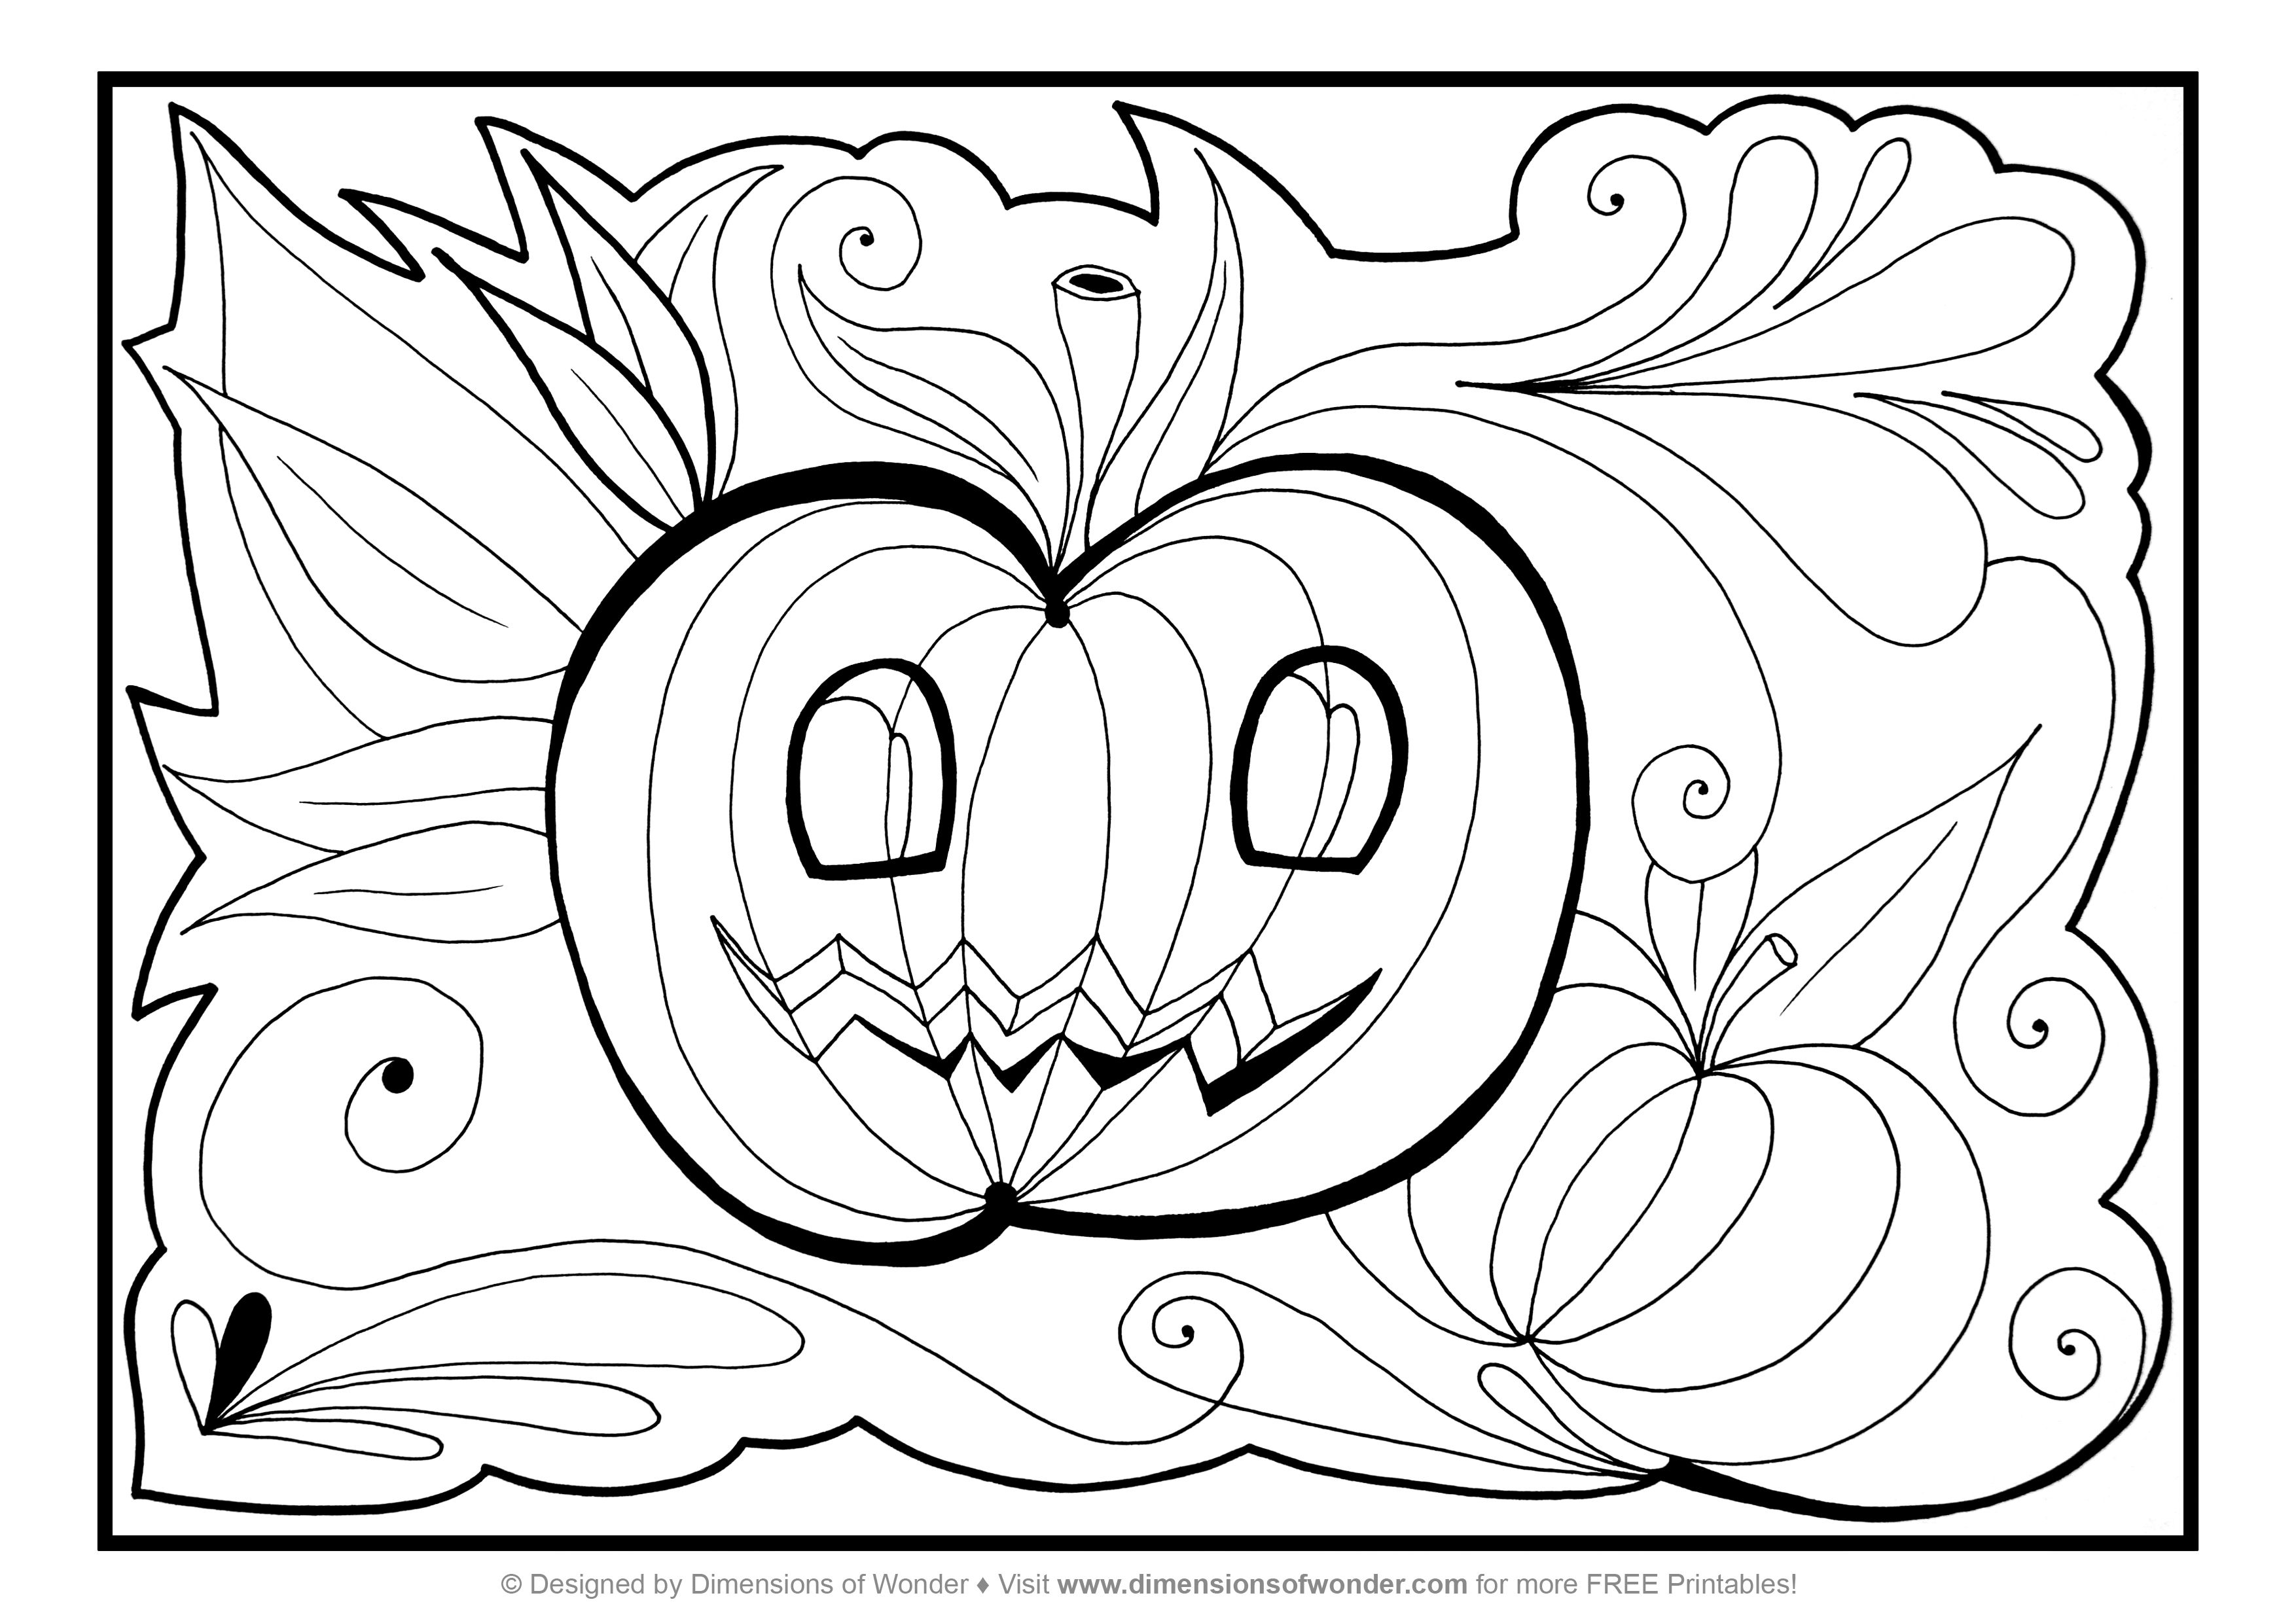 Disney coloring books for halloween - 14 Best On Point Fall Halloween Thanksgiving Images On Pinterest Coloring Books Drawings And Coloring Sheets